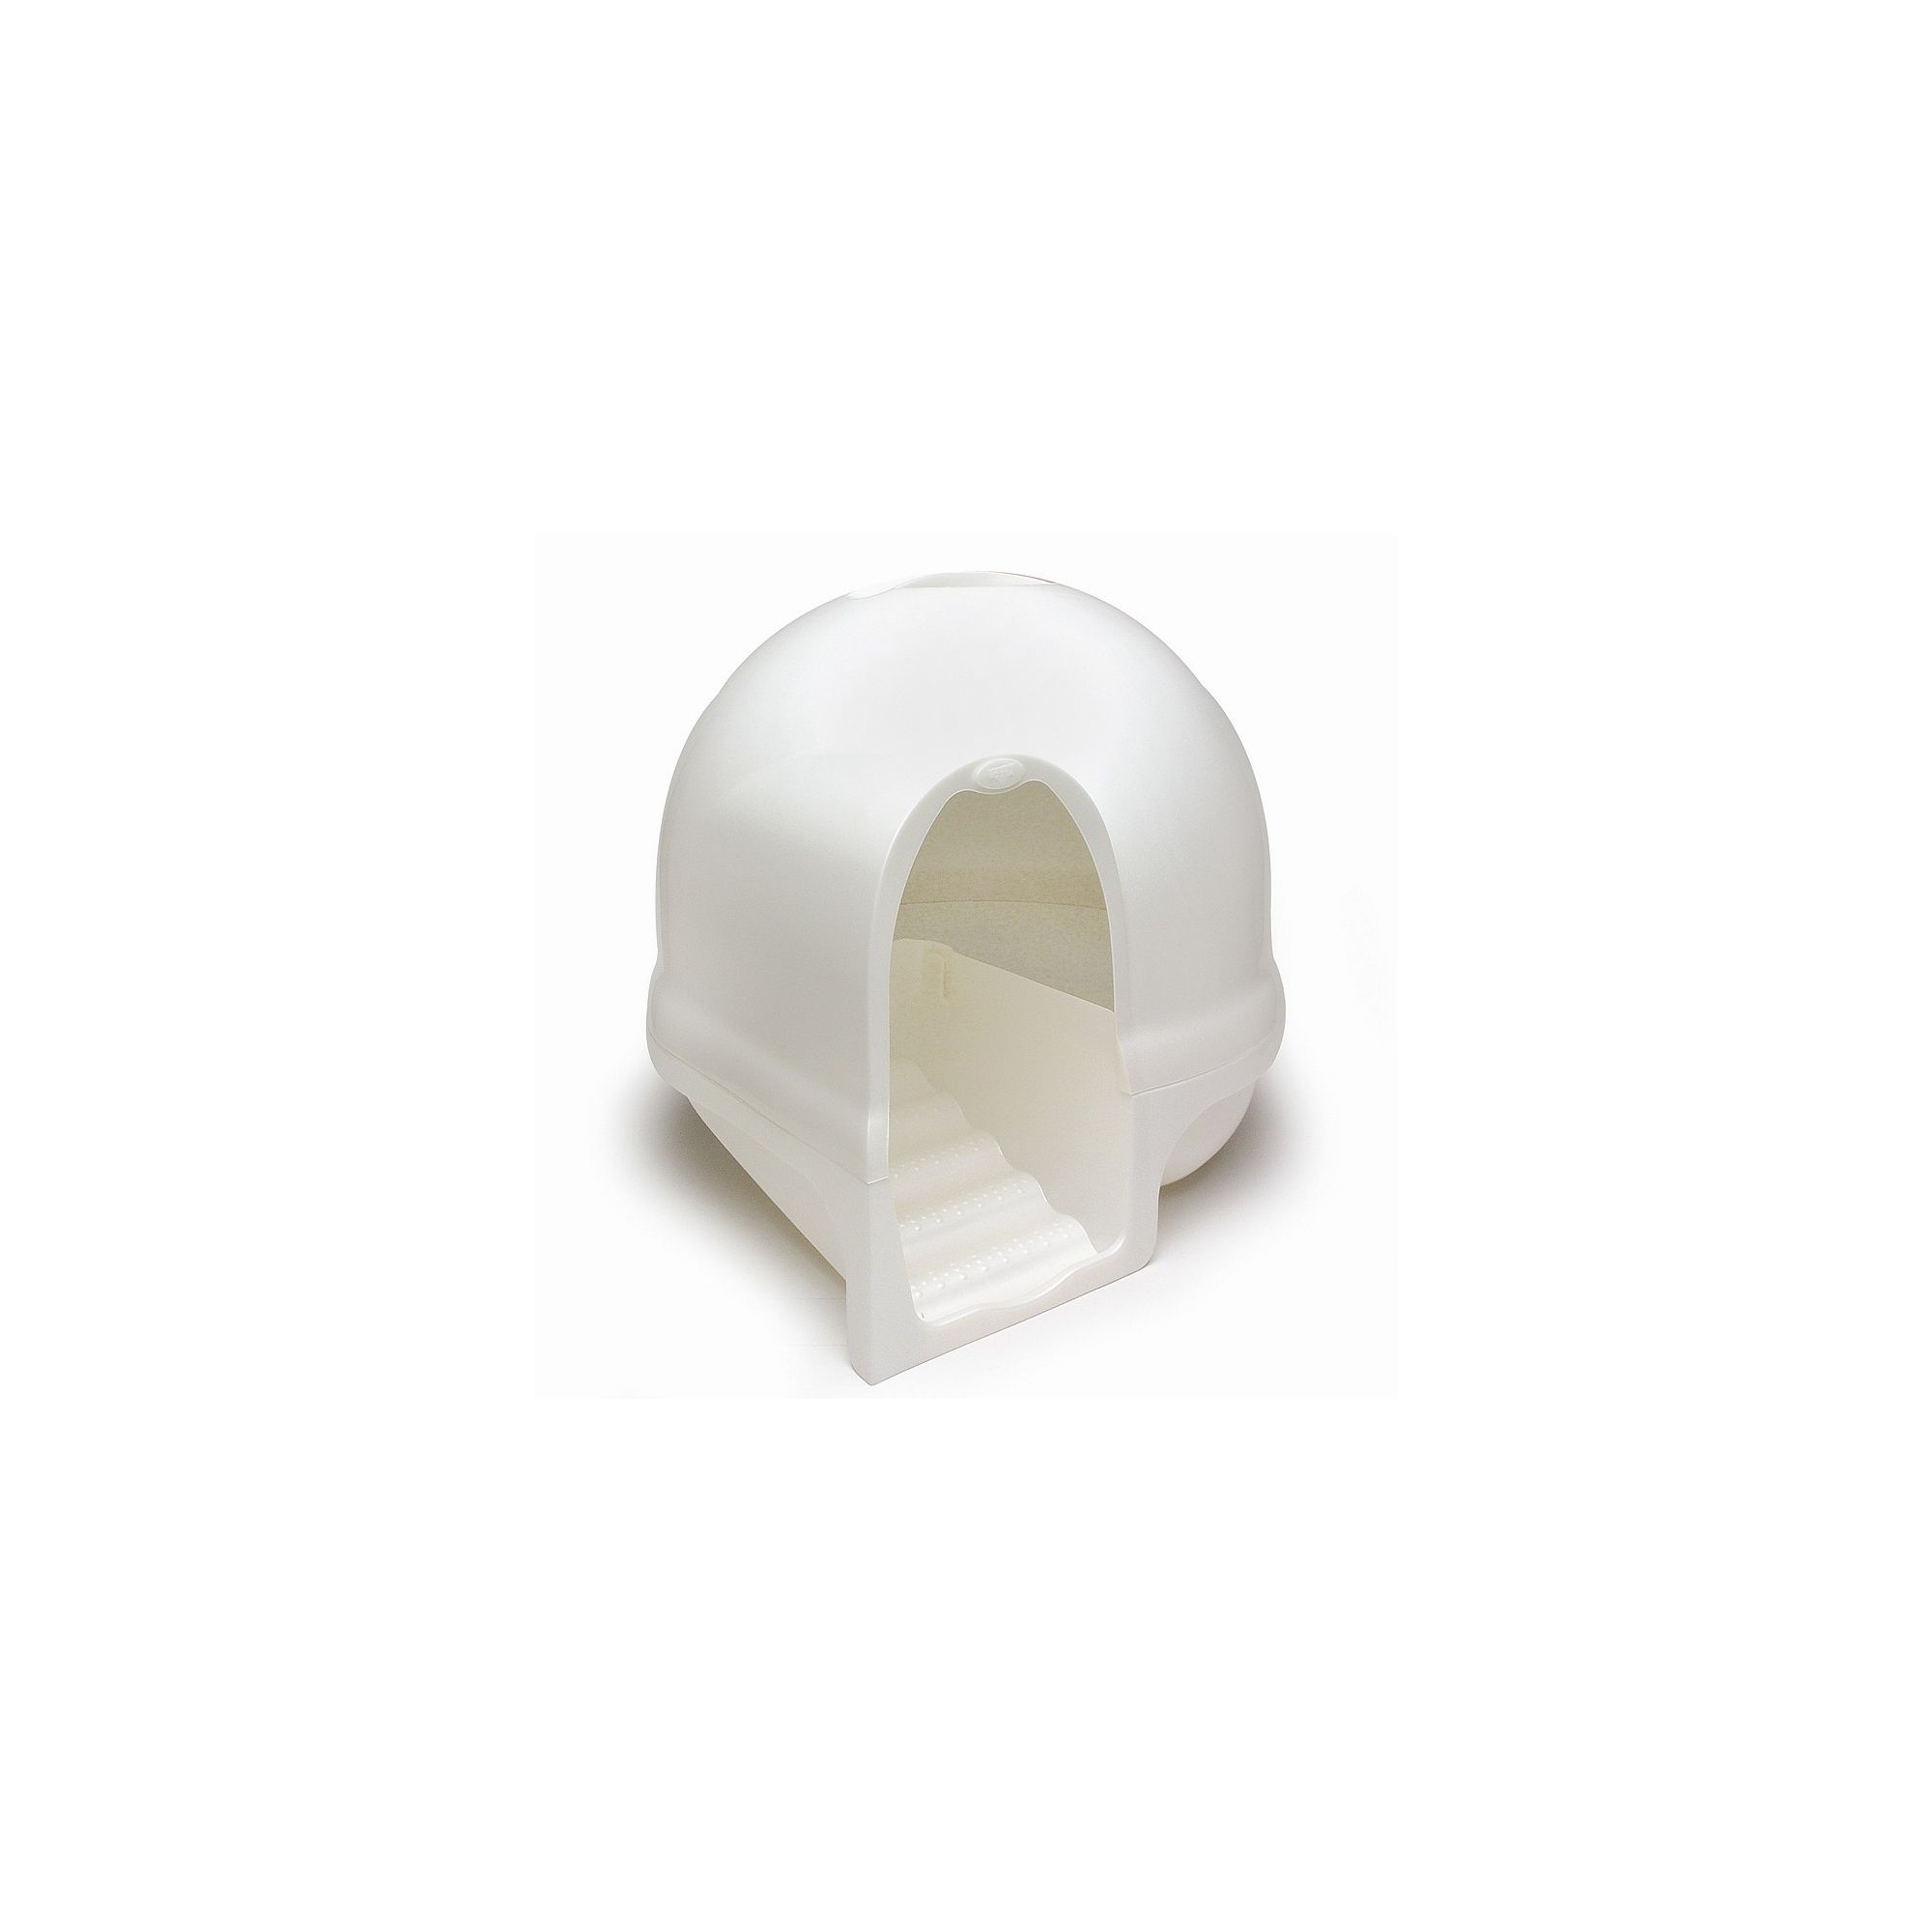 Petmate Dome, Cleanstep Cat Box in Pearl